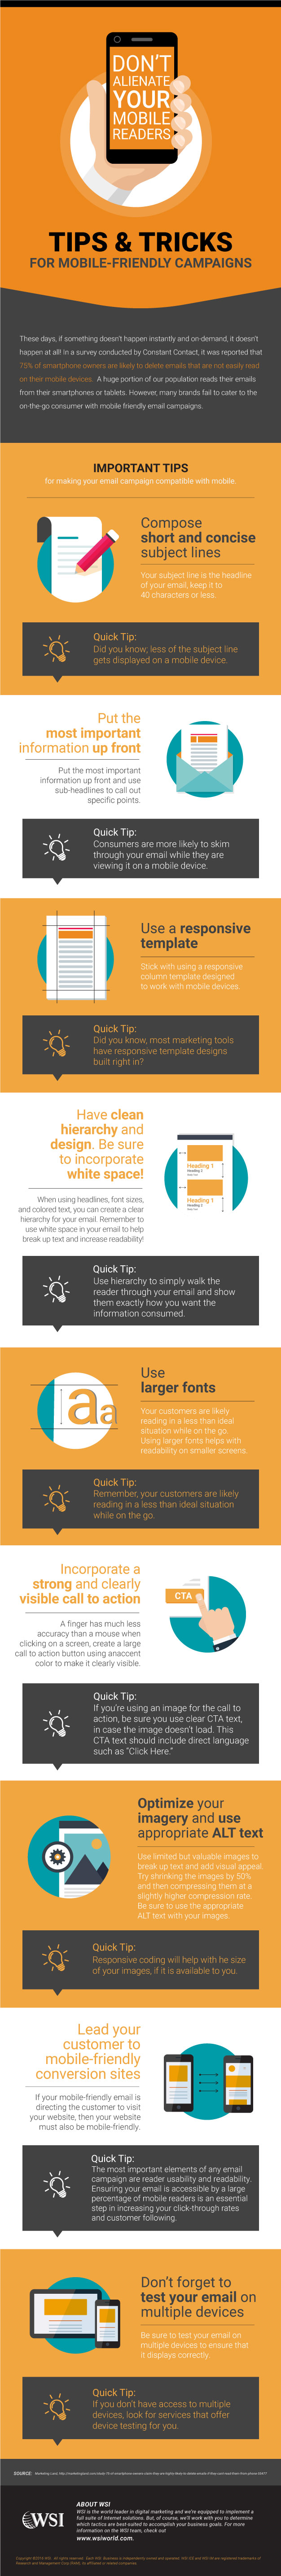 Tips & Tricks for Mobile Friendly infographic